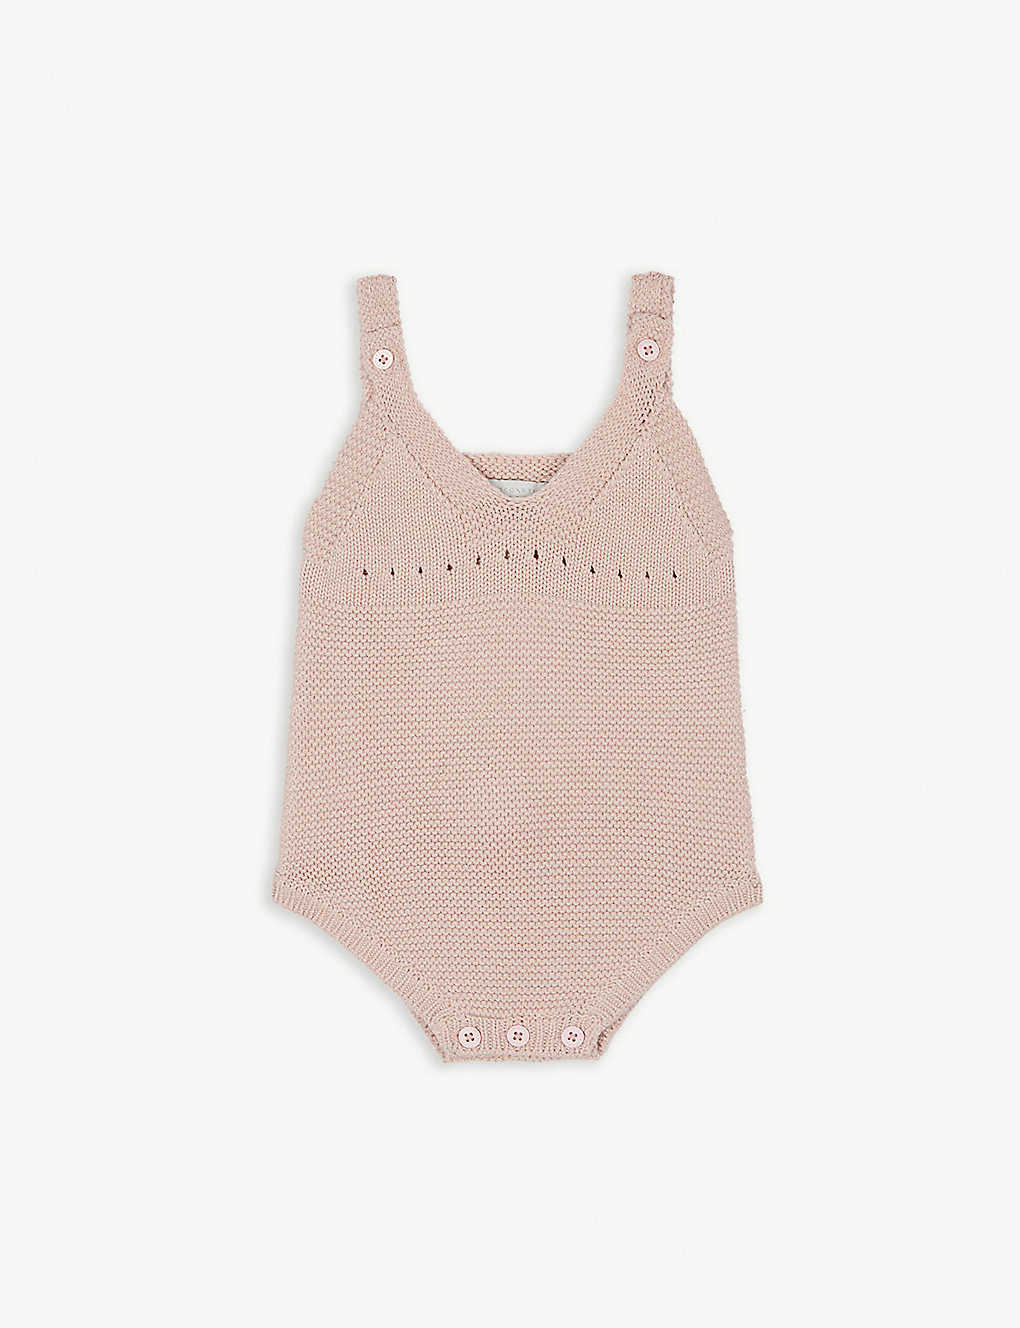 c07335e59 STELLA MCCARTNEY - Bunny organic cotton all-in-one 3-12 months ...